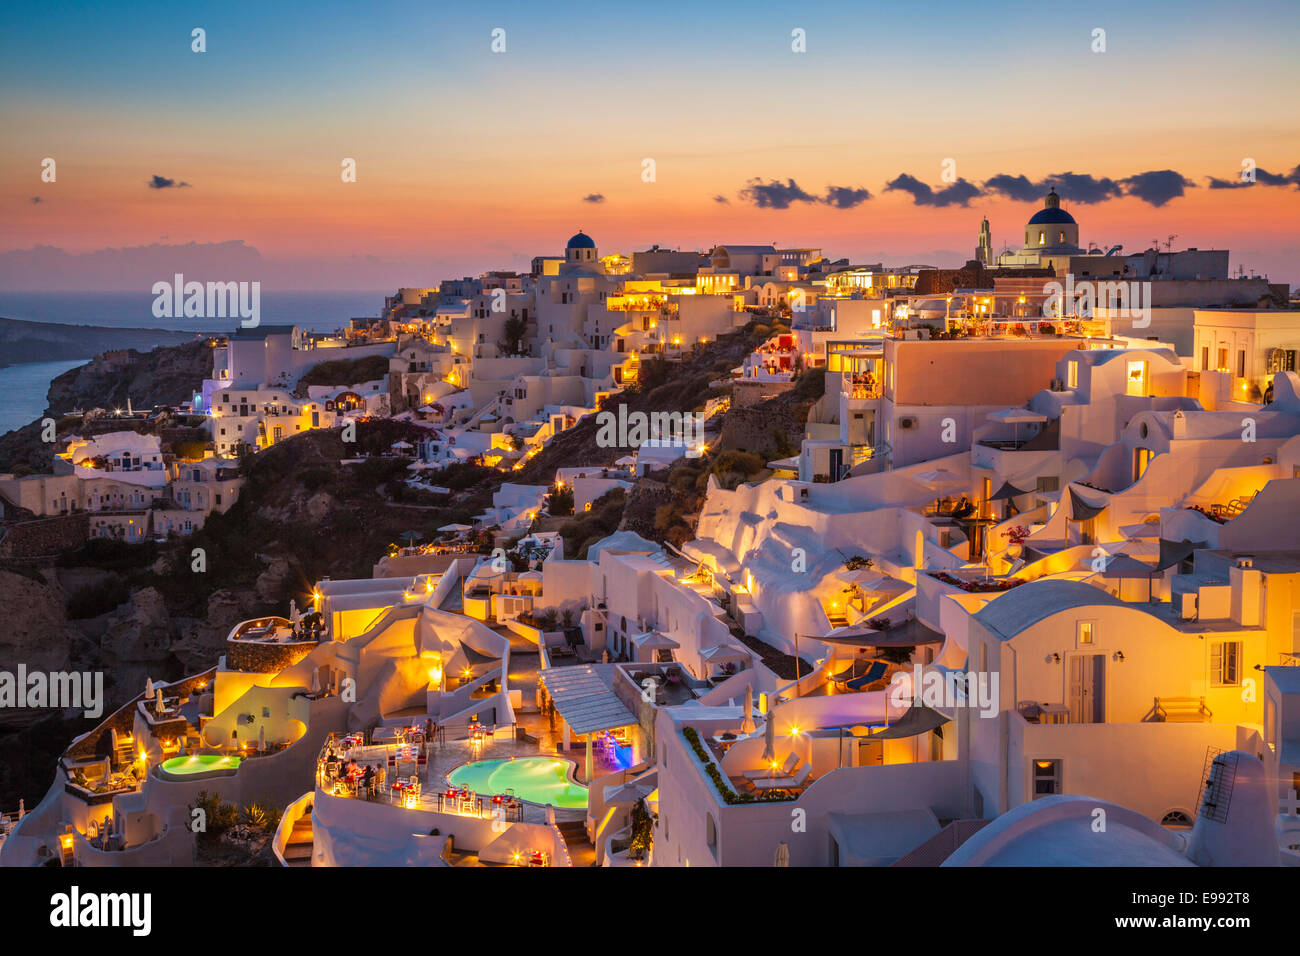 Pools And Hotels At Night In The Village Of Oia Santorini